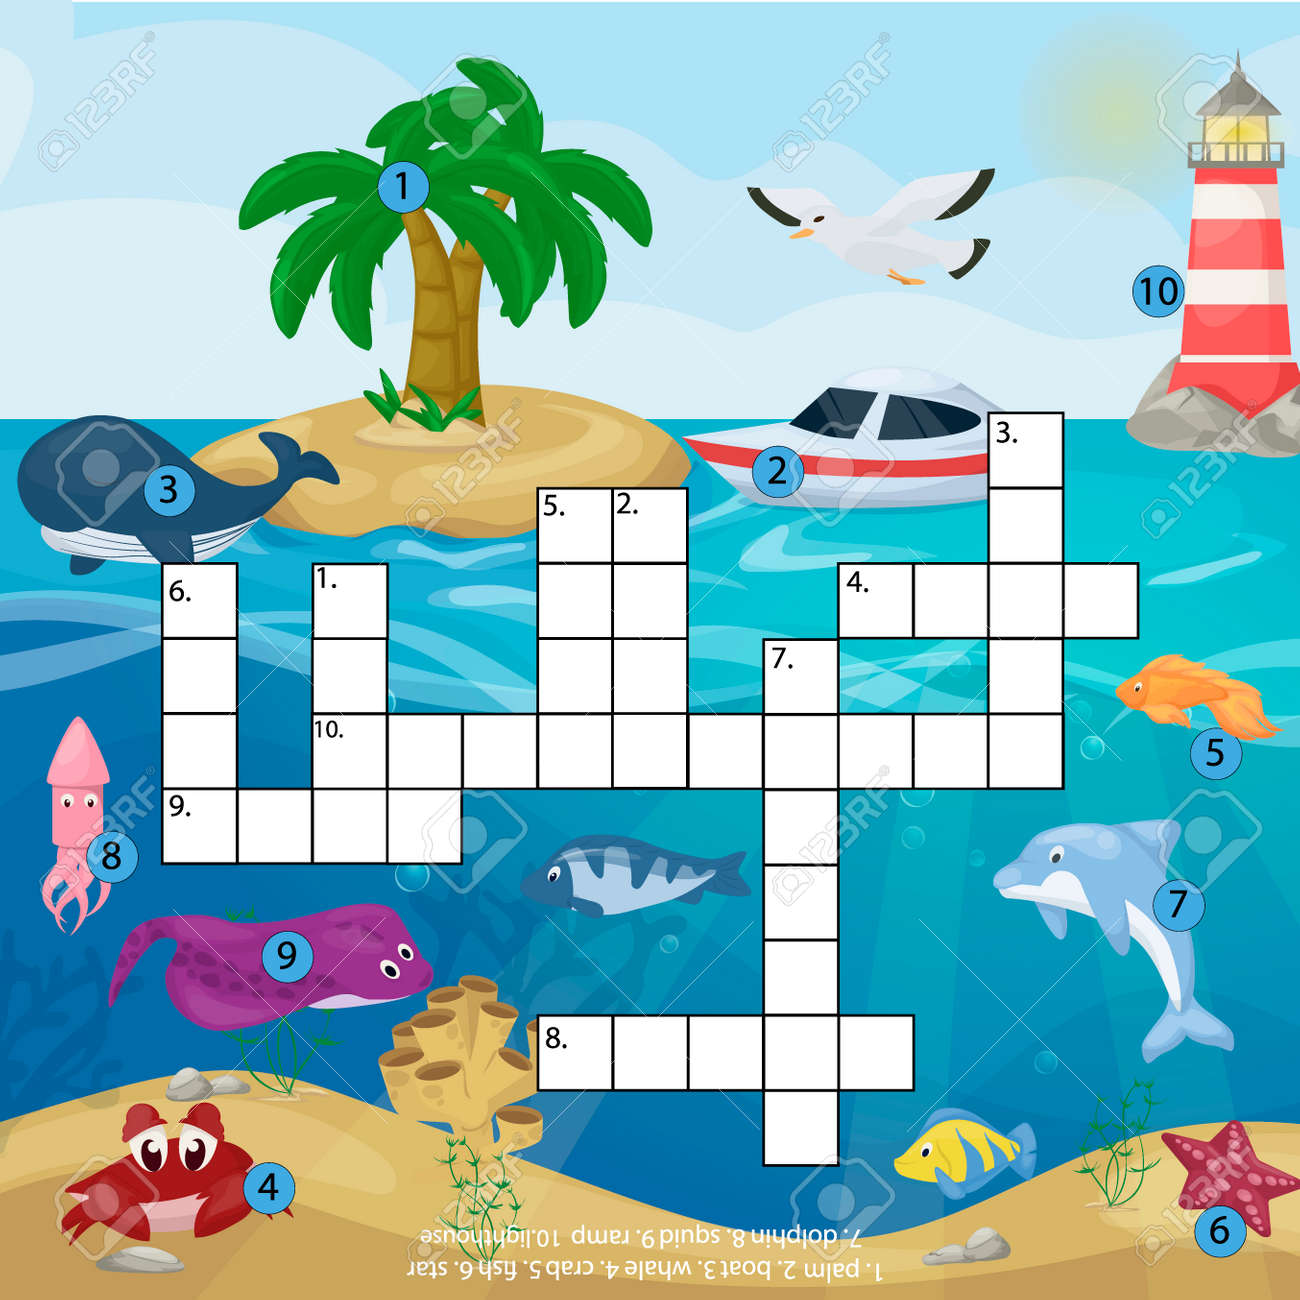 image about Star Magazine Crossword Puzzles Printable titled Crossword young children journal guide puzzle match of sea underwater ocean..